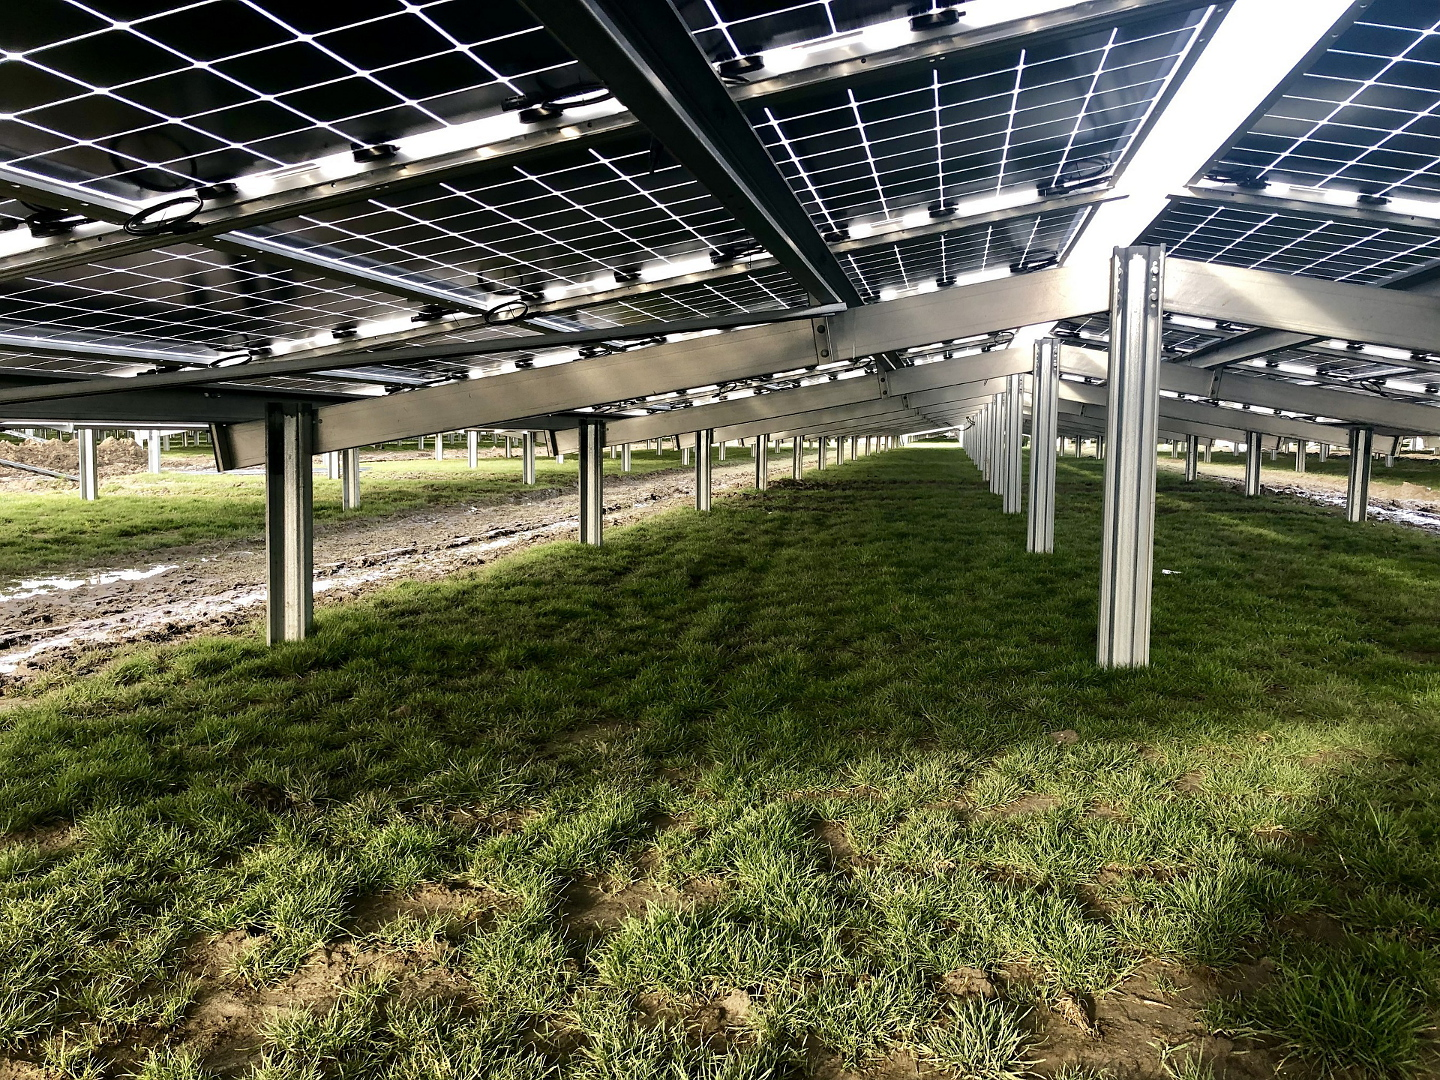 The company publicly issued a convertible corporate bond in the first half of 2019 to raise funds for the company's planned annual production output of 1.5GW of n-type mono TOPCON bifacial cells. Image: Jolywood